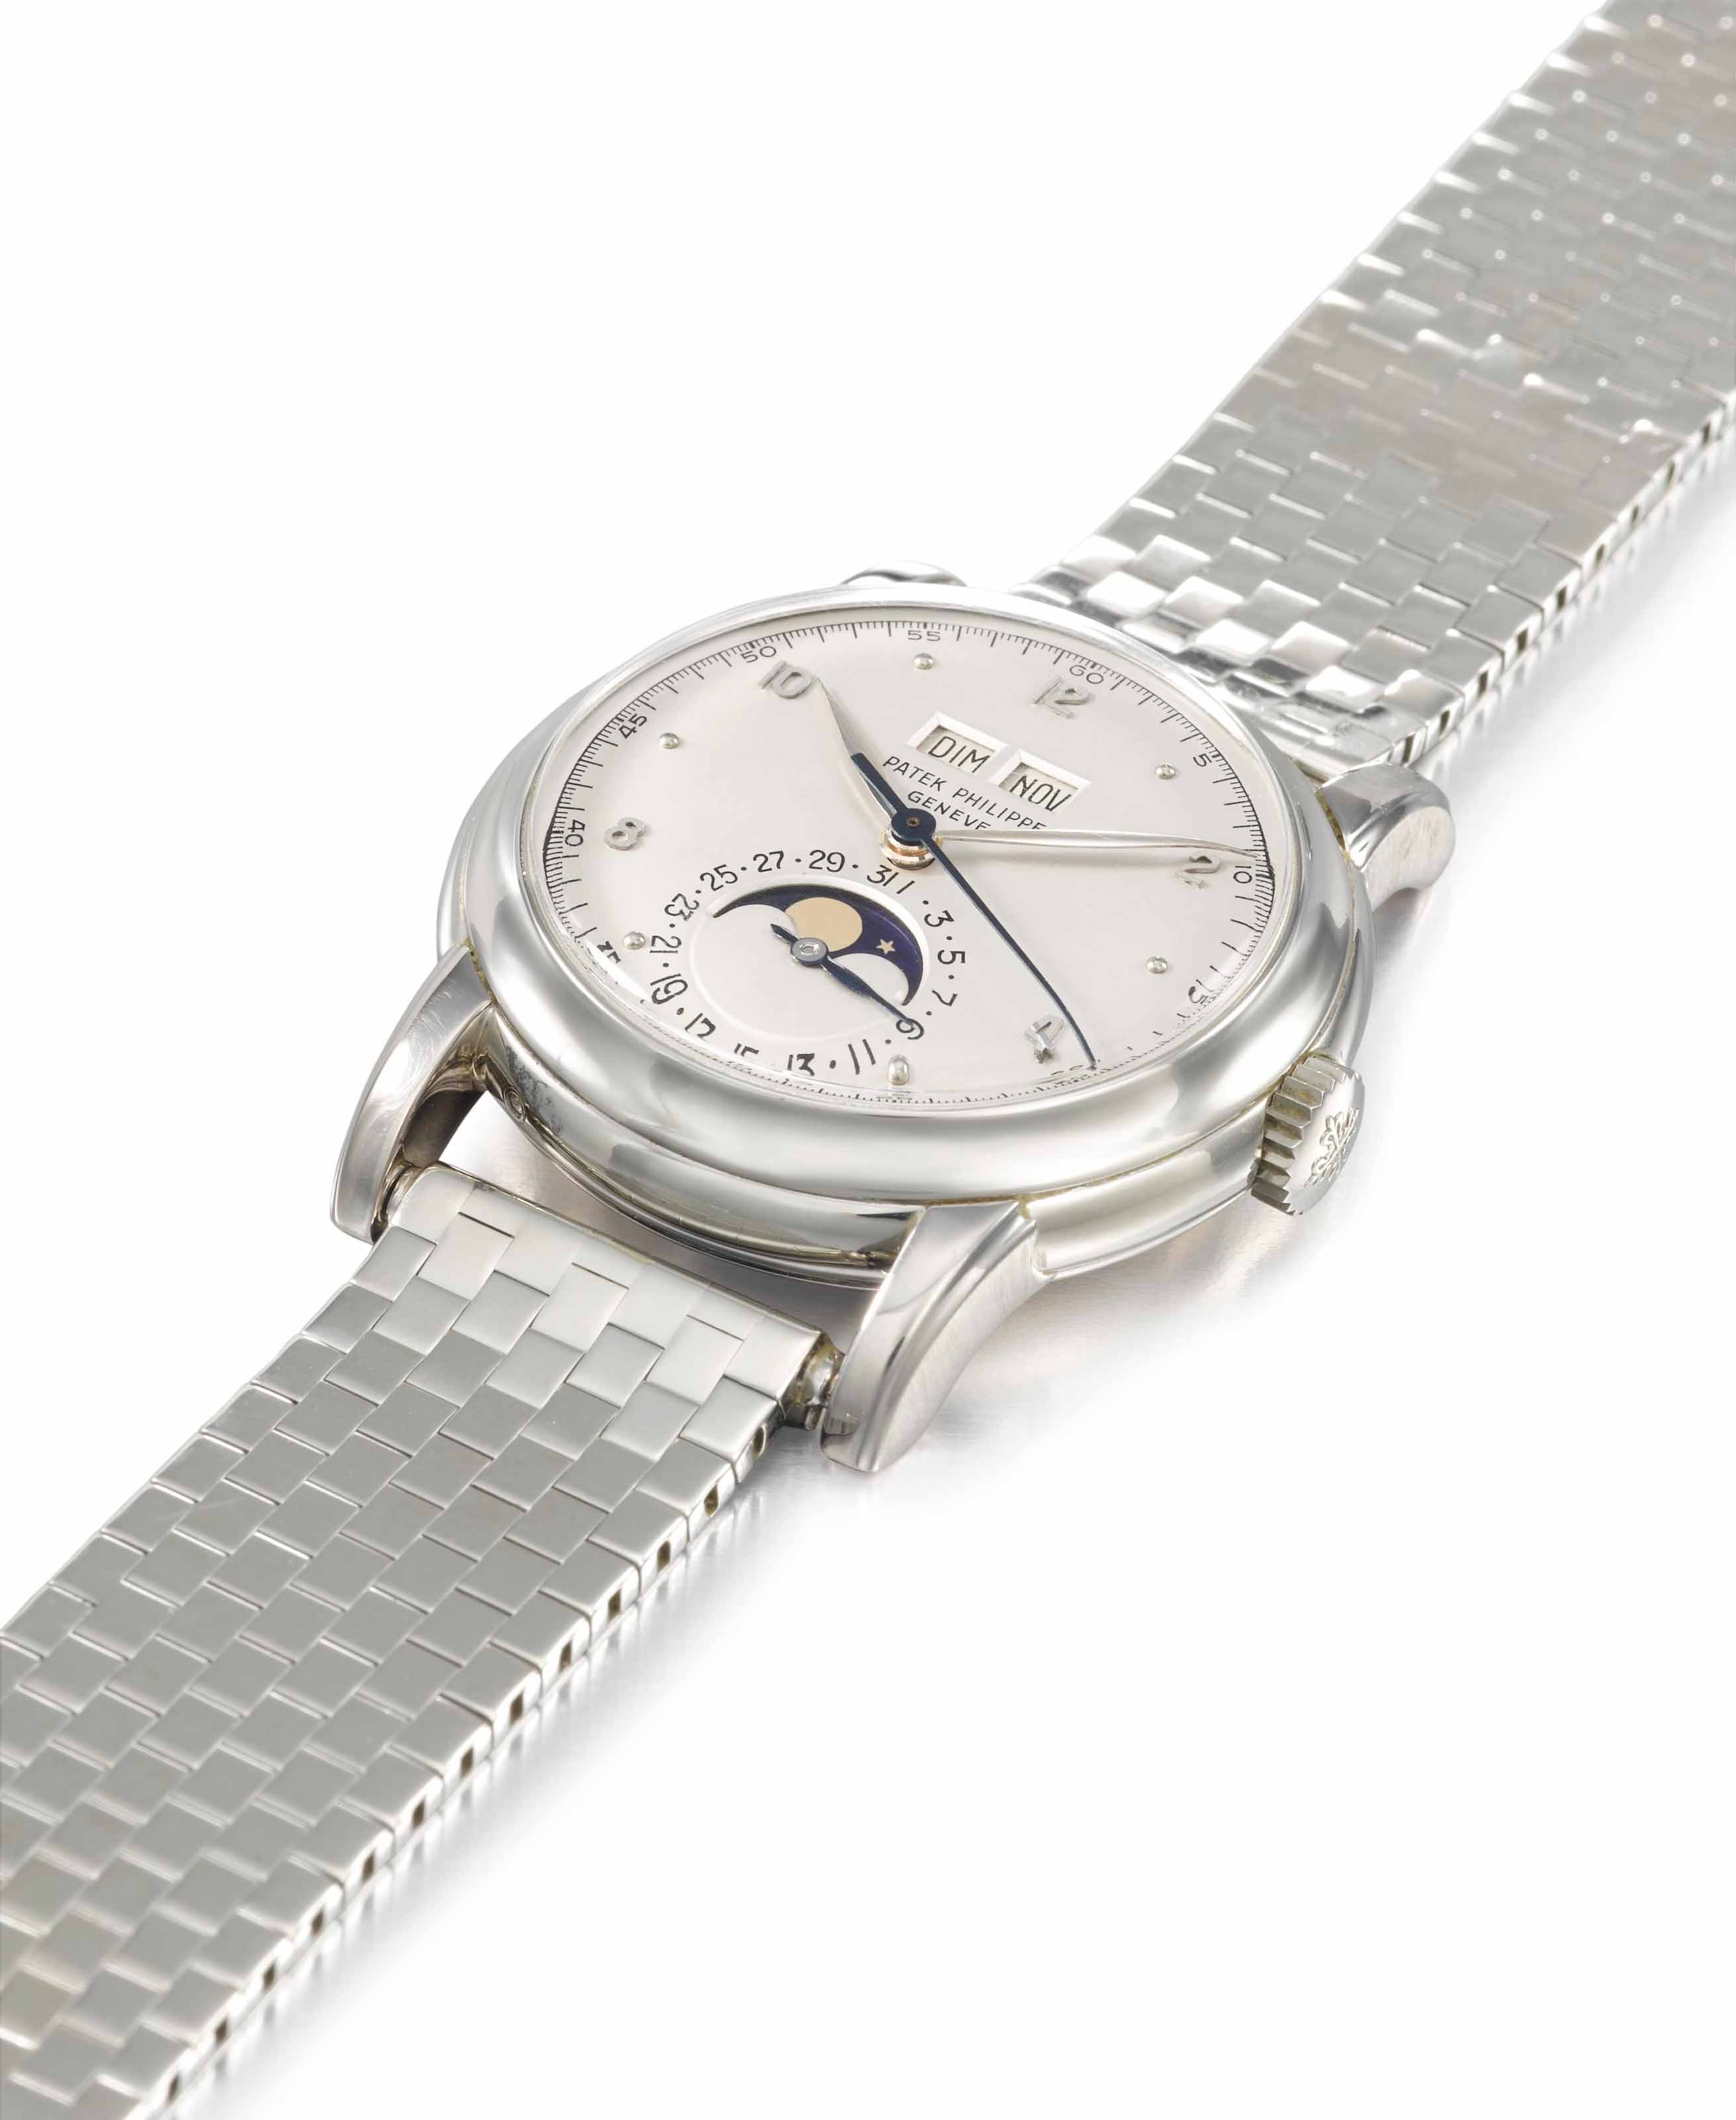 Patek Philippe. An extremely rare and very fine 18K white gold perpetual calendar wristwatch with sweep centre seconds, phases of the moon and bracelet